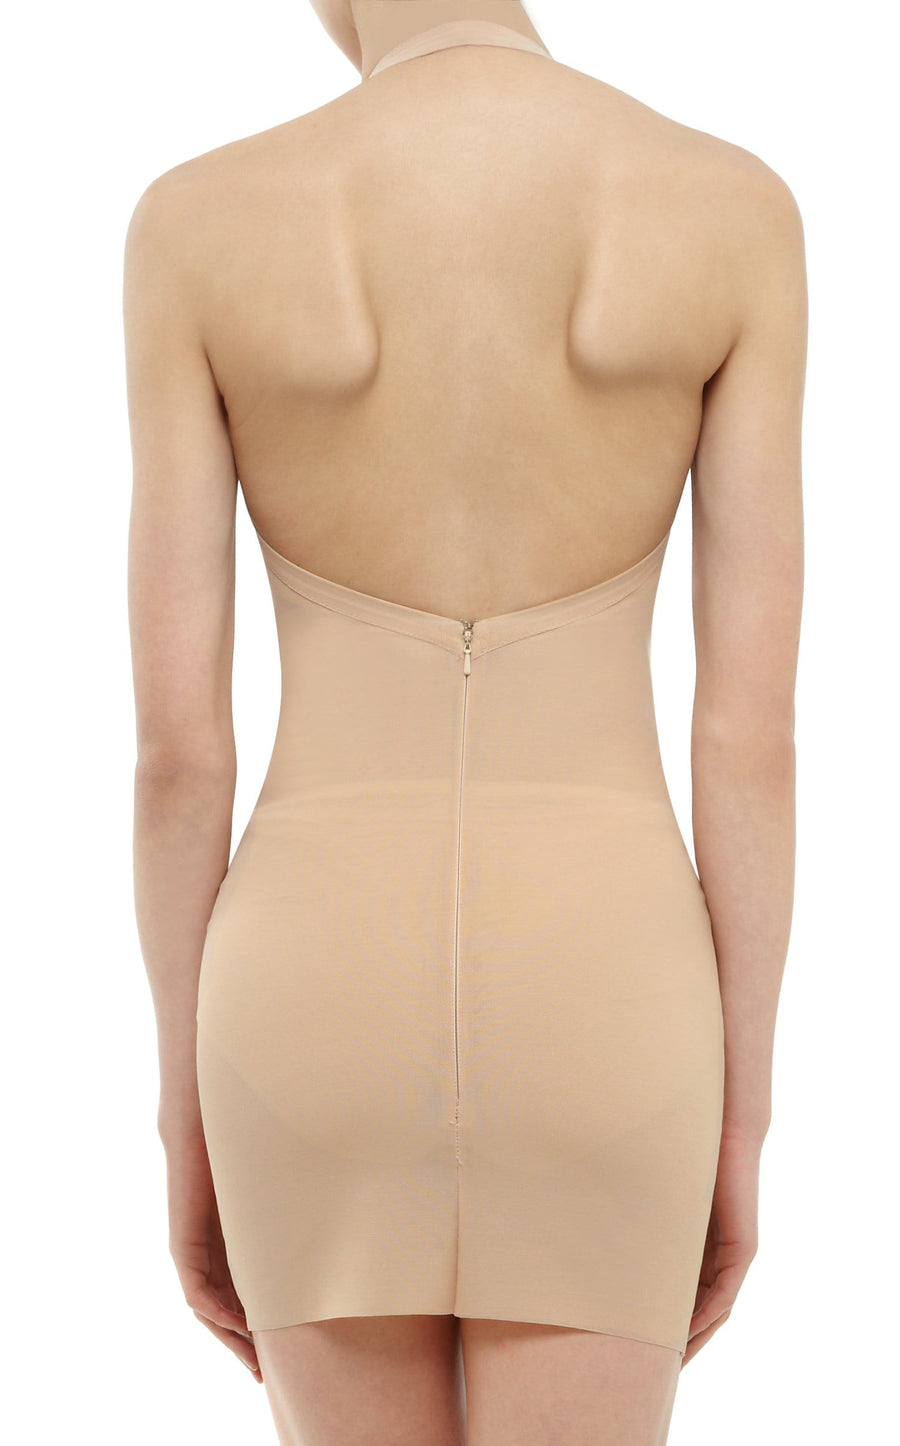 Powermesh Halter Mini Dress In Flesh from Roland Mouret